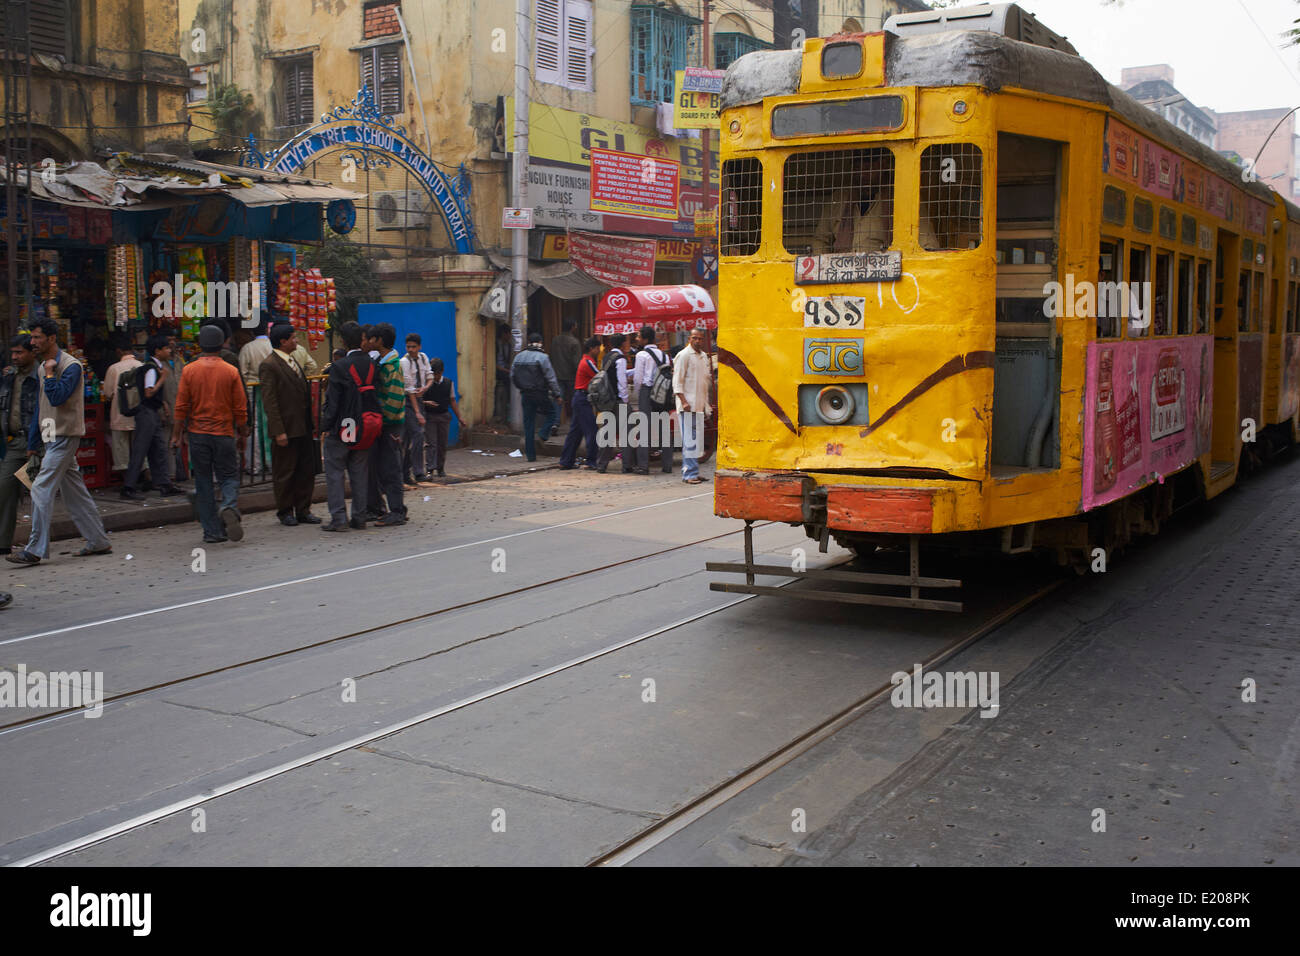 India, West Bengal, Kolkata, Calcutta, old tramway Stock Photo